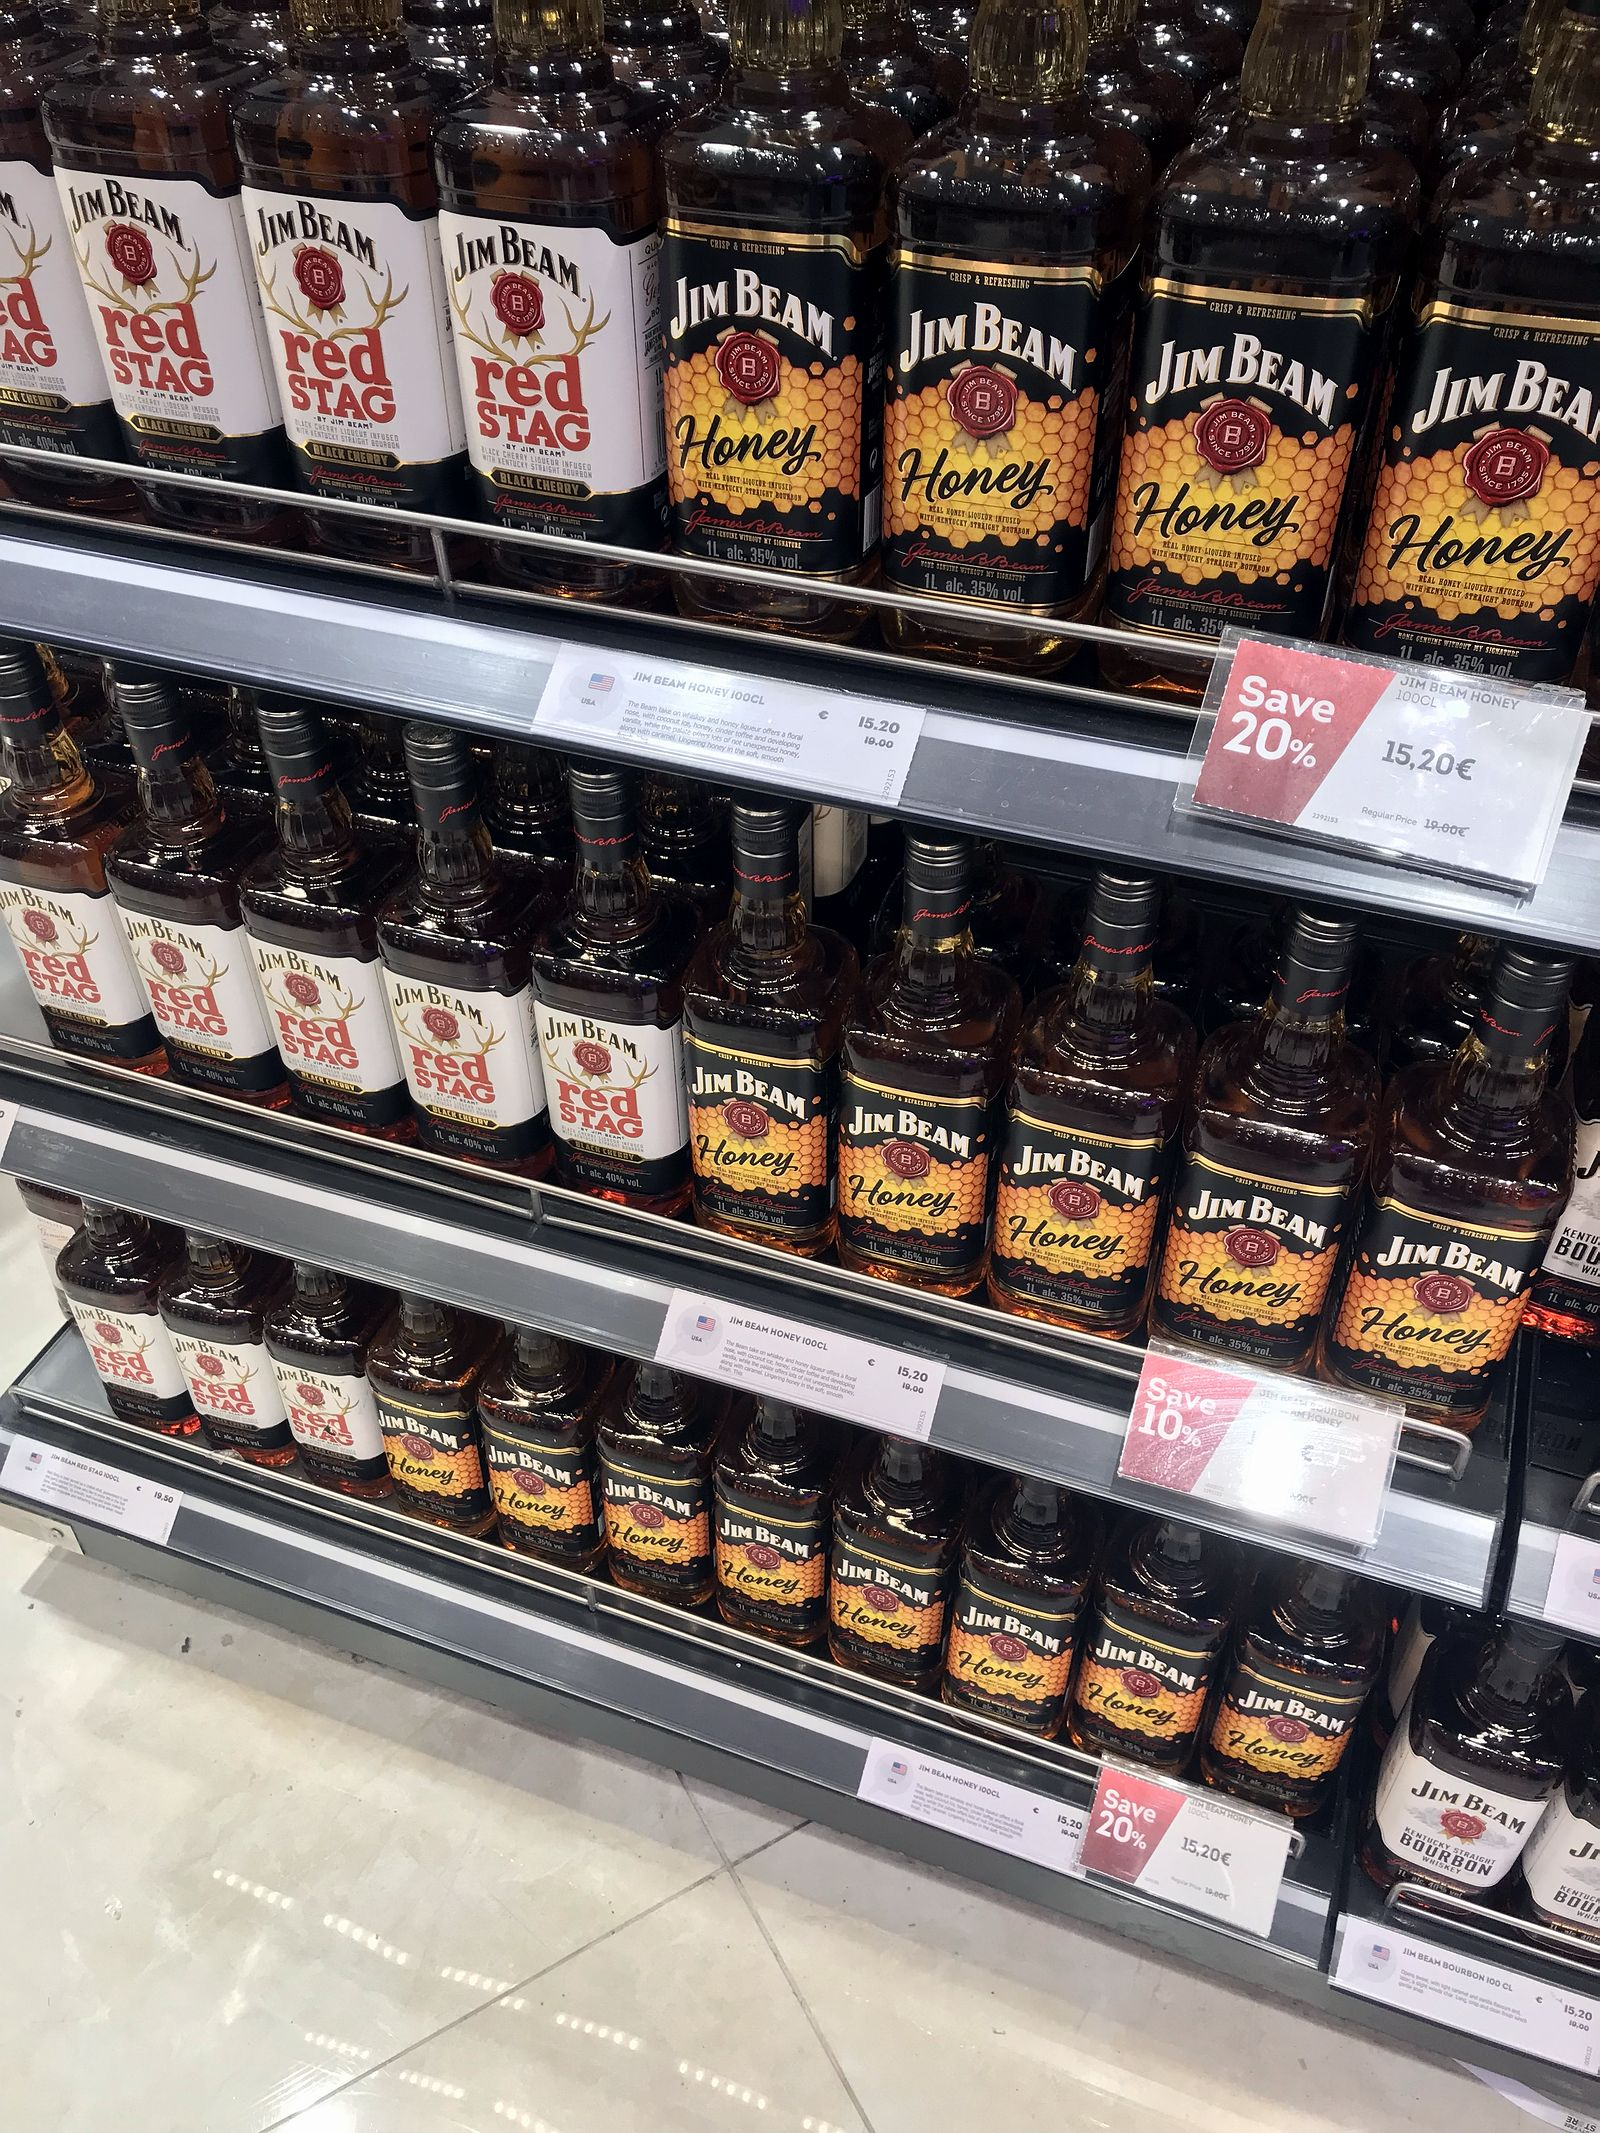 Duty free Antalya, august 2019, bourbon Jim Beam